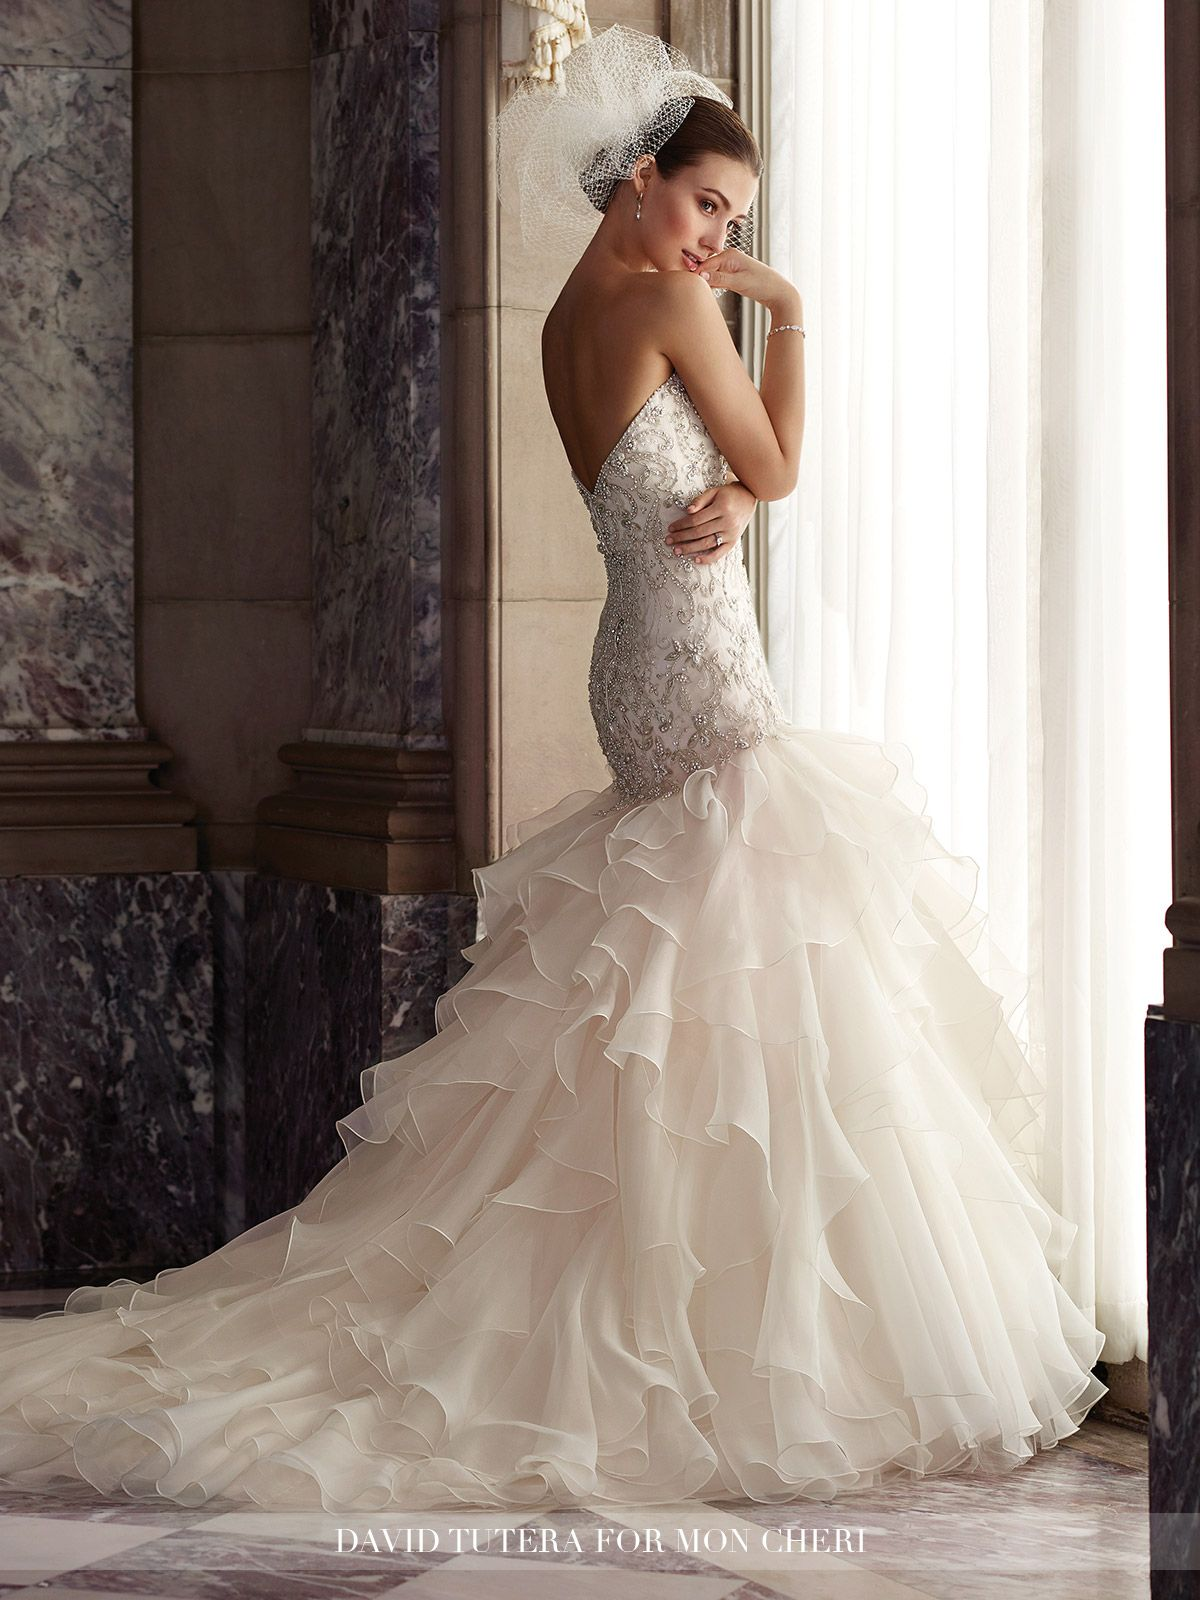 Organza Trumpet Gown With Sweetheart Neckline, Hand Pattern Beaded Embroidered Motif